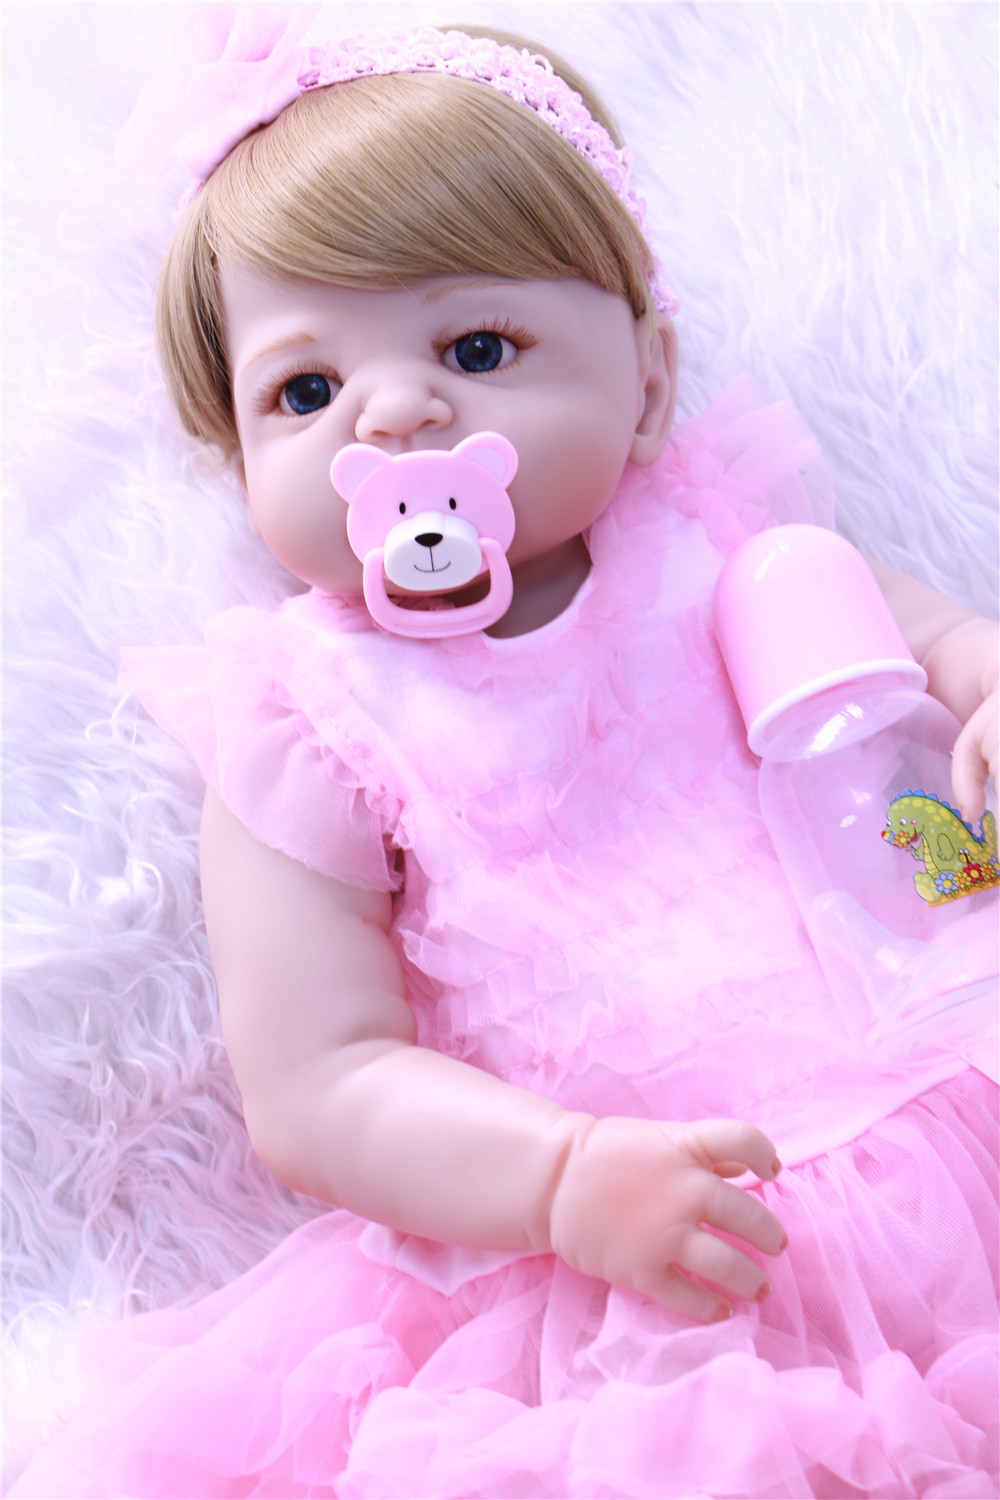 55cm Full Silicone Body Reborn Girl Baby Doll Toy Lifelike Vinyl Princess Toddler Doll Birthday Gift Present Girl Brinquedos new arrived vinyl lifelike princess doll 45cm girl dress up children toy birthday present